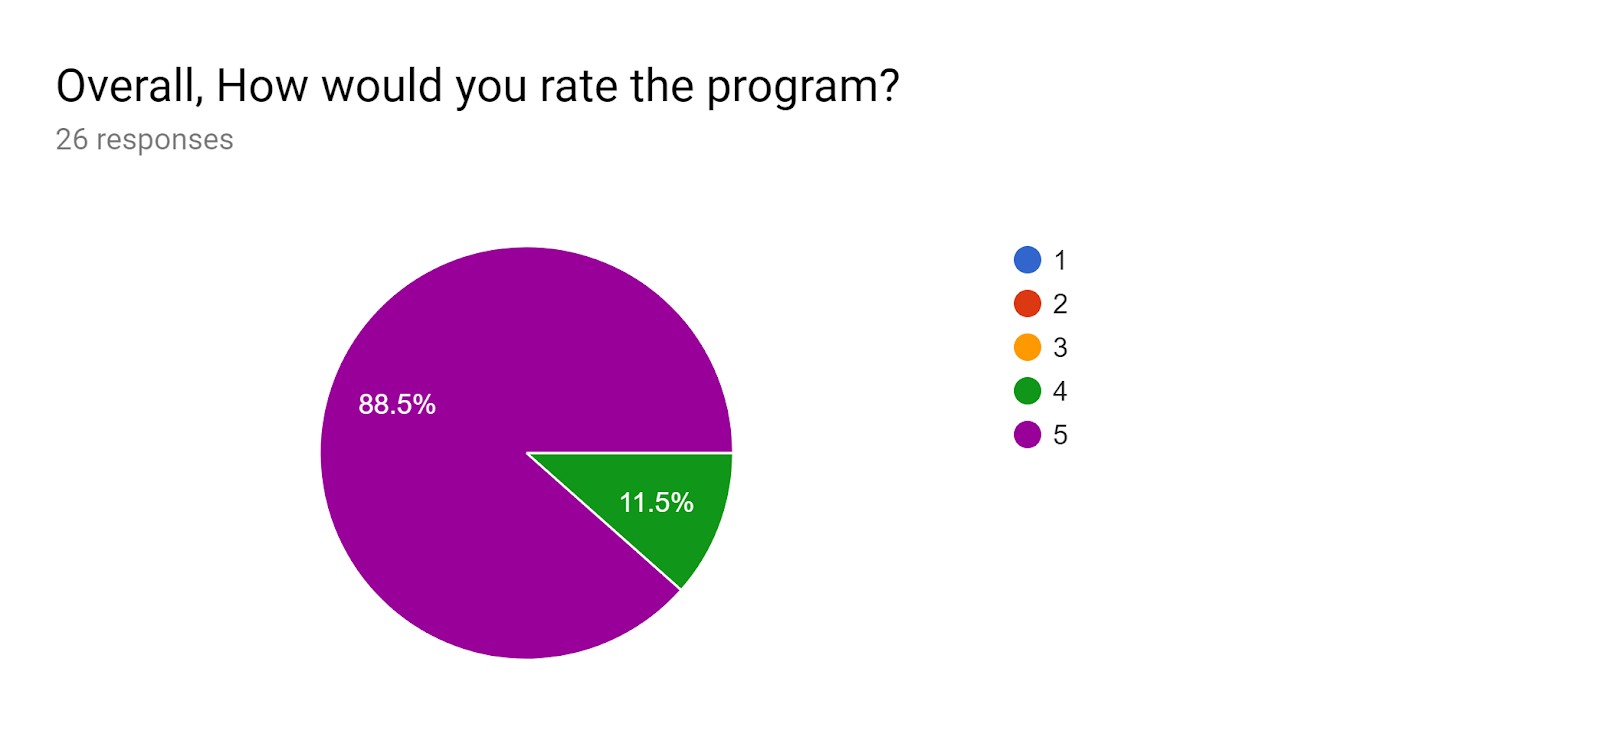 Forms response chart. Question title: Overall, How would you rate the program?. Number of responses: 26 responses.